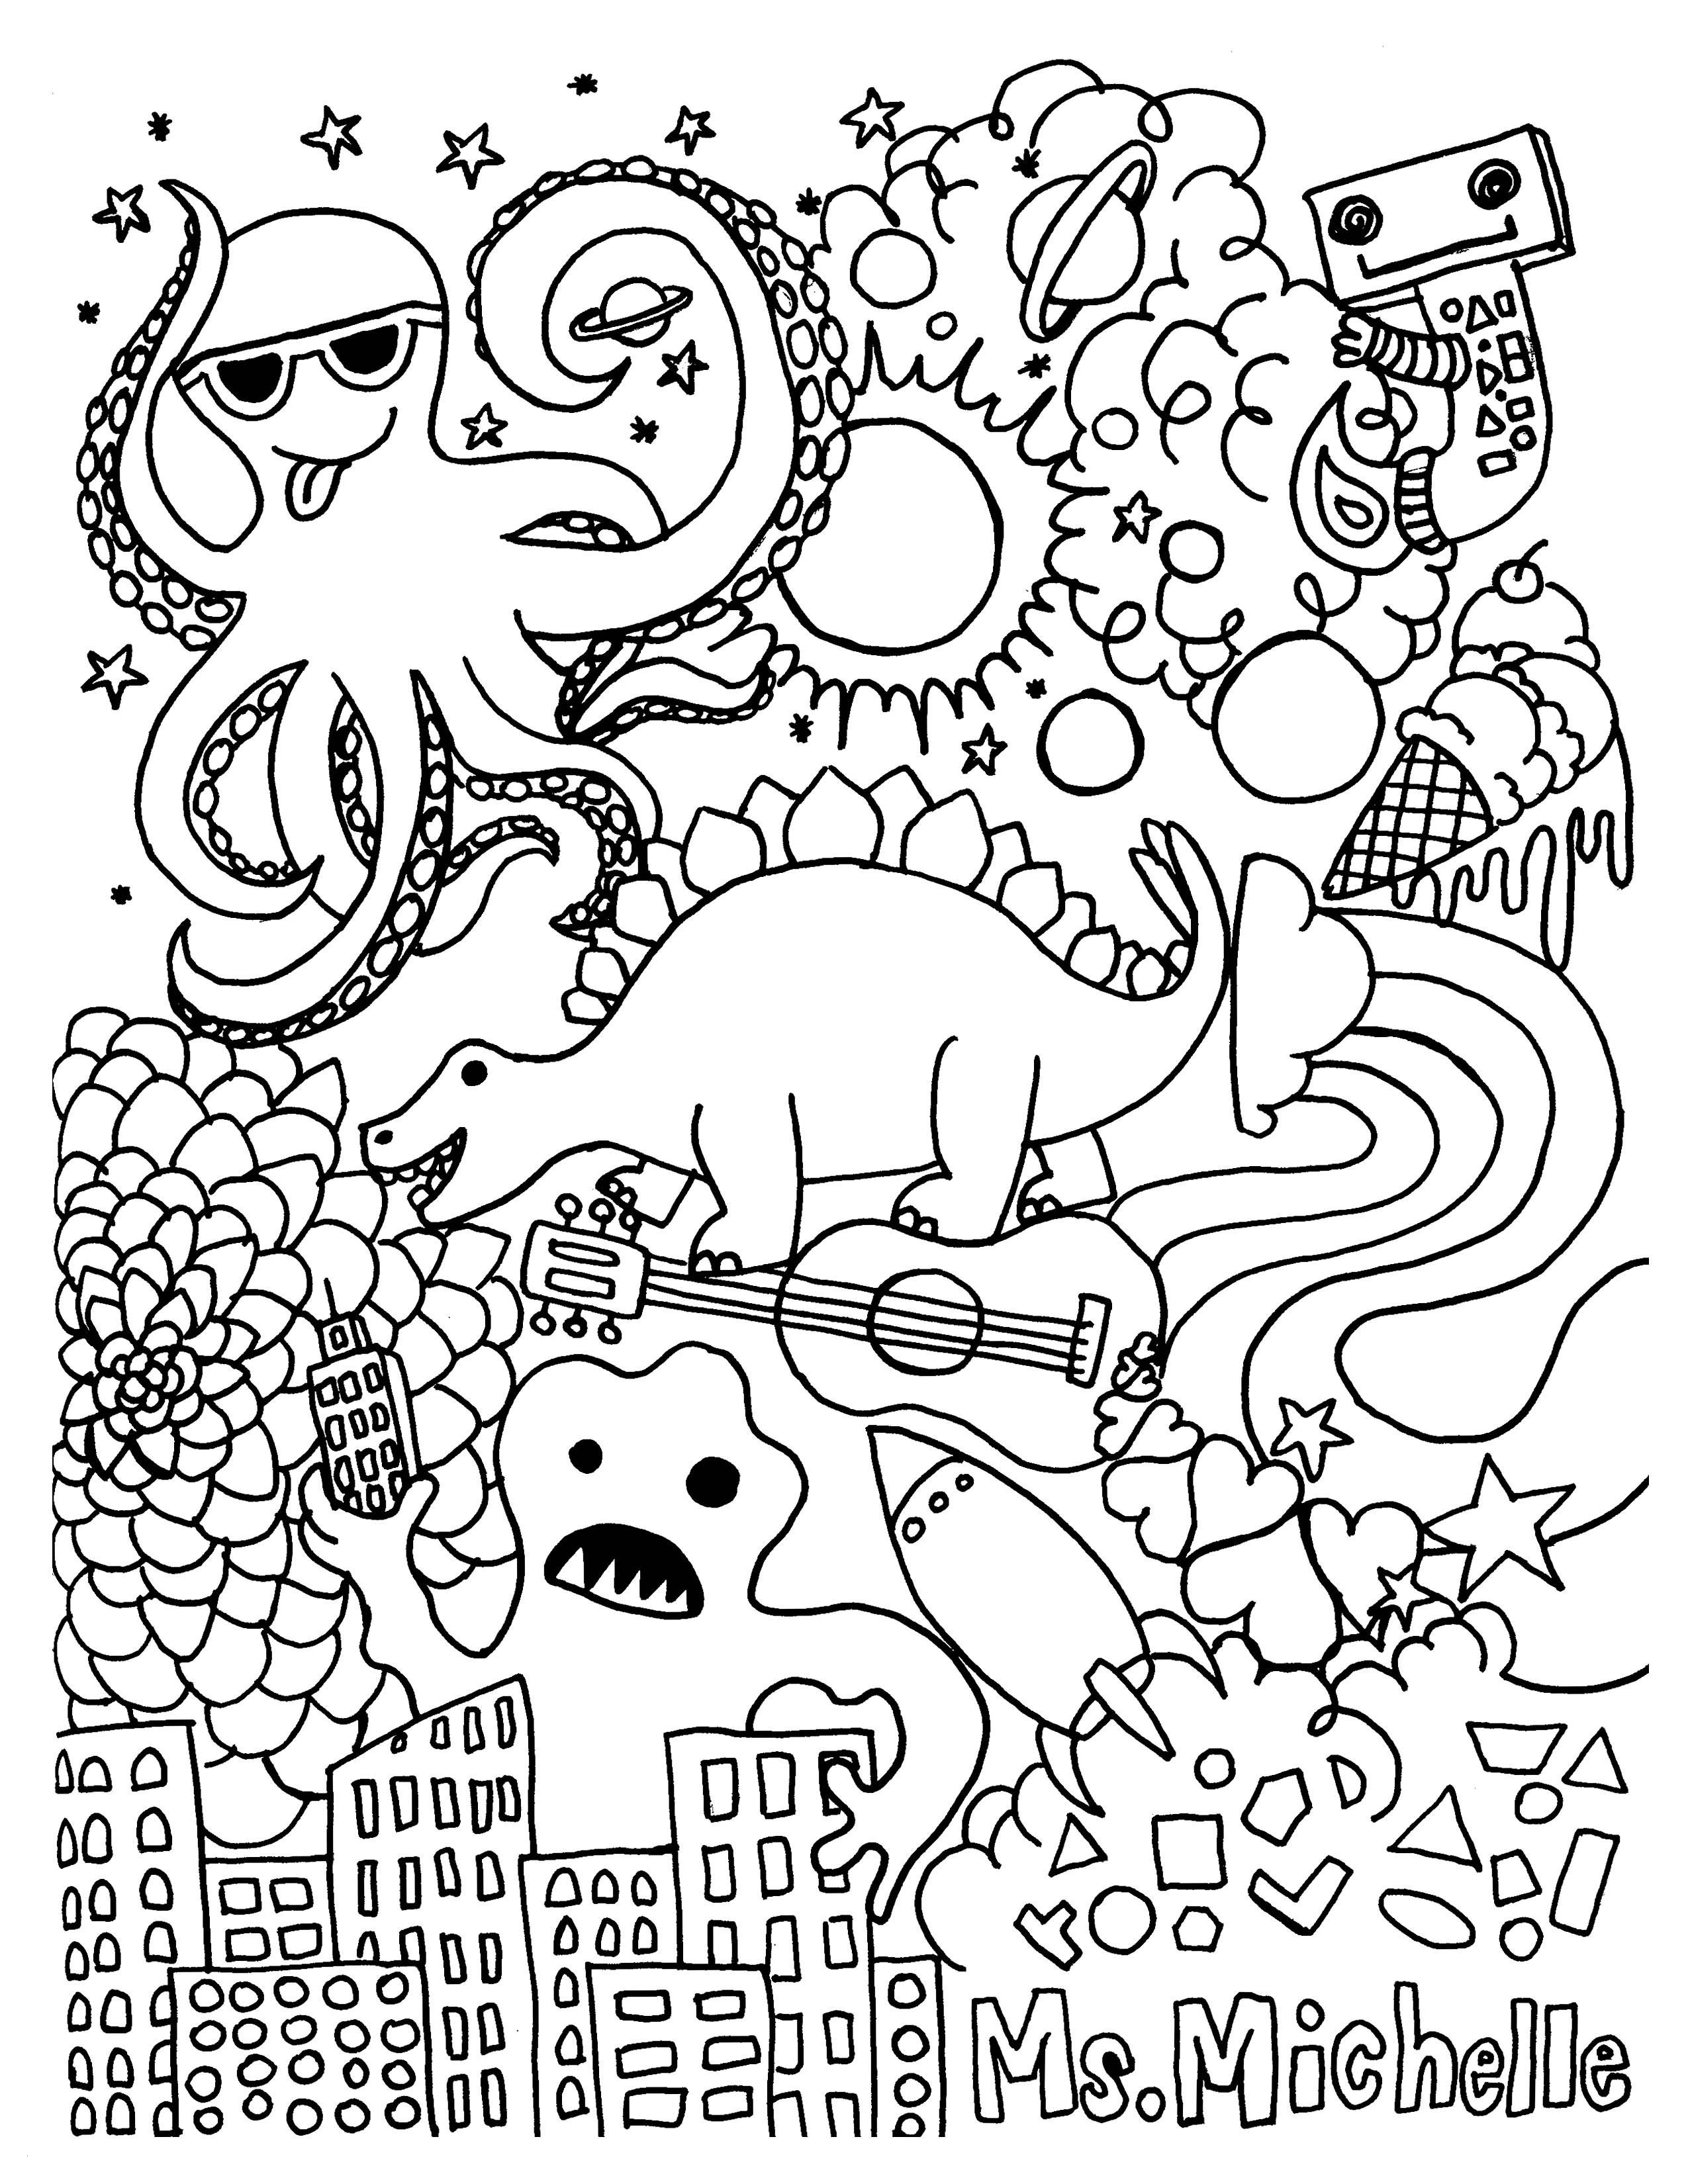 mummy coloring pages Download-Mummy Coloring Pages 11-s